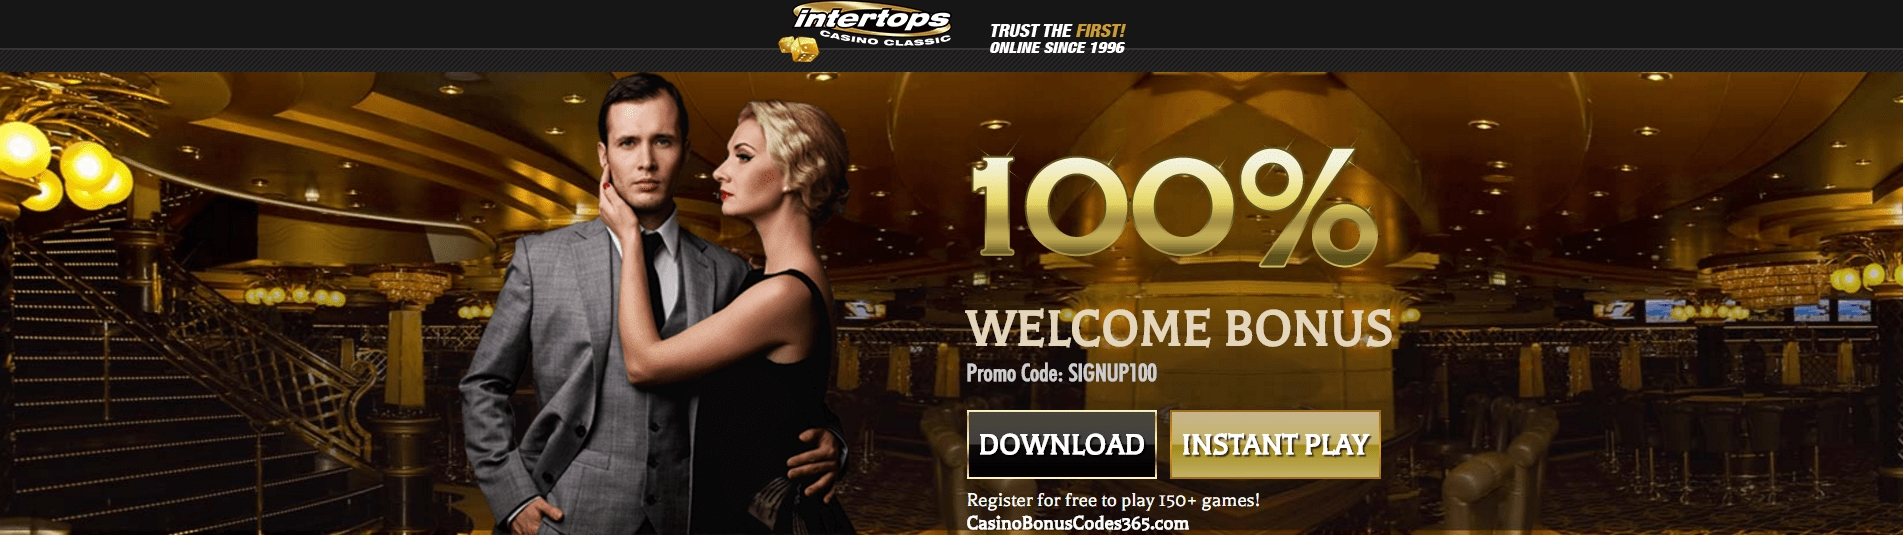 55 free spins no deposit casino at Party Casino